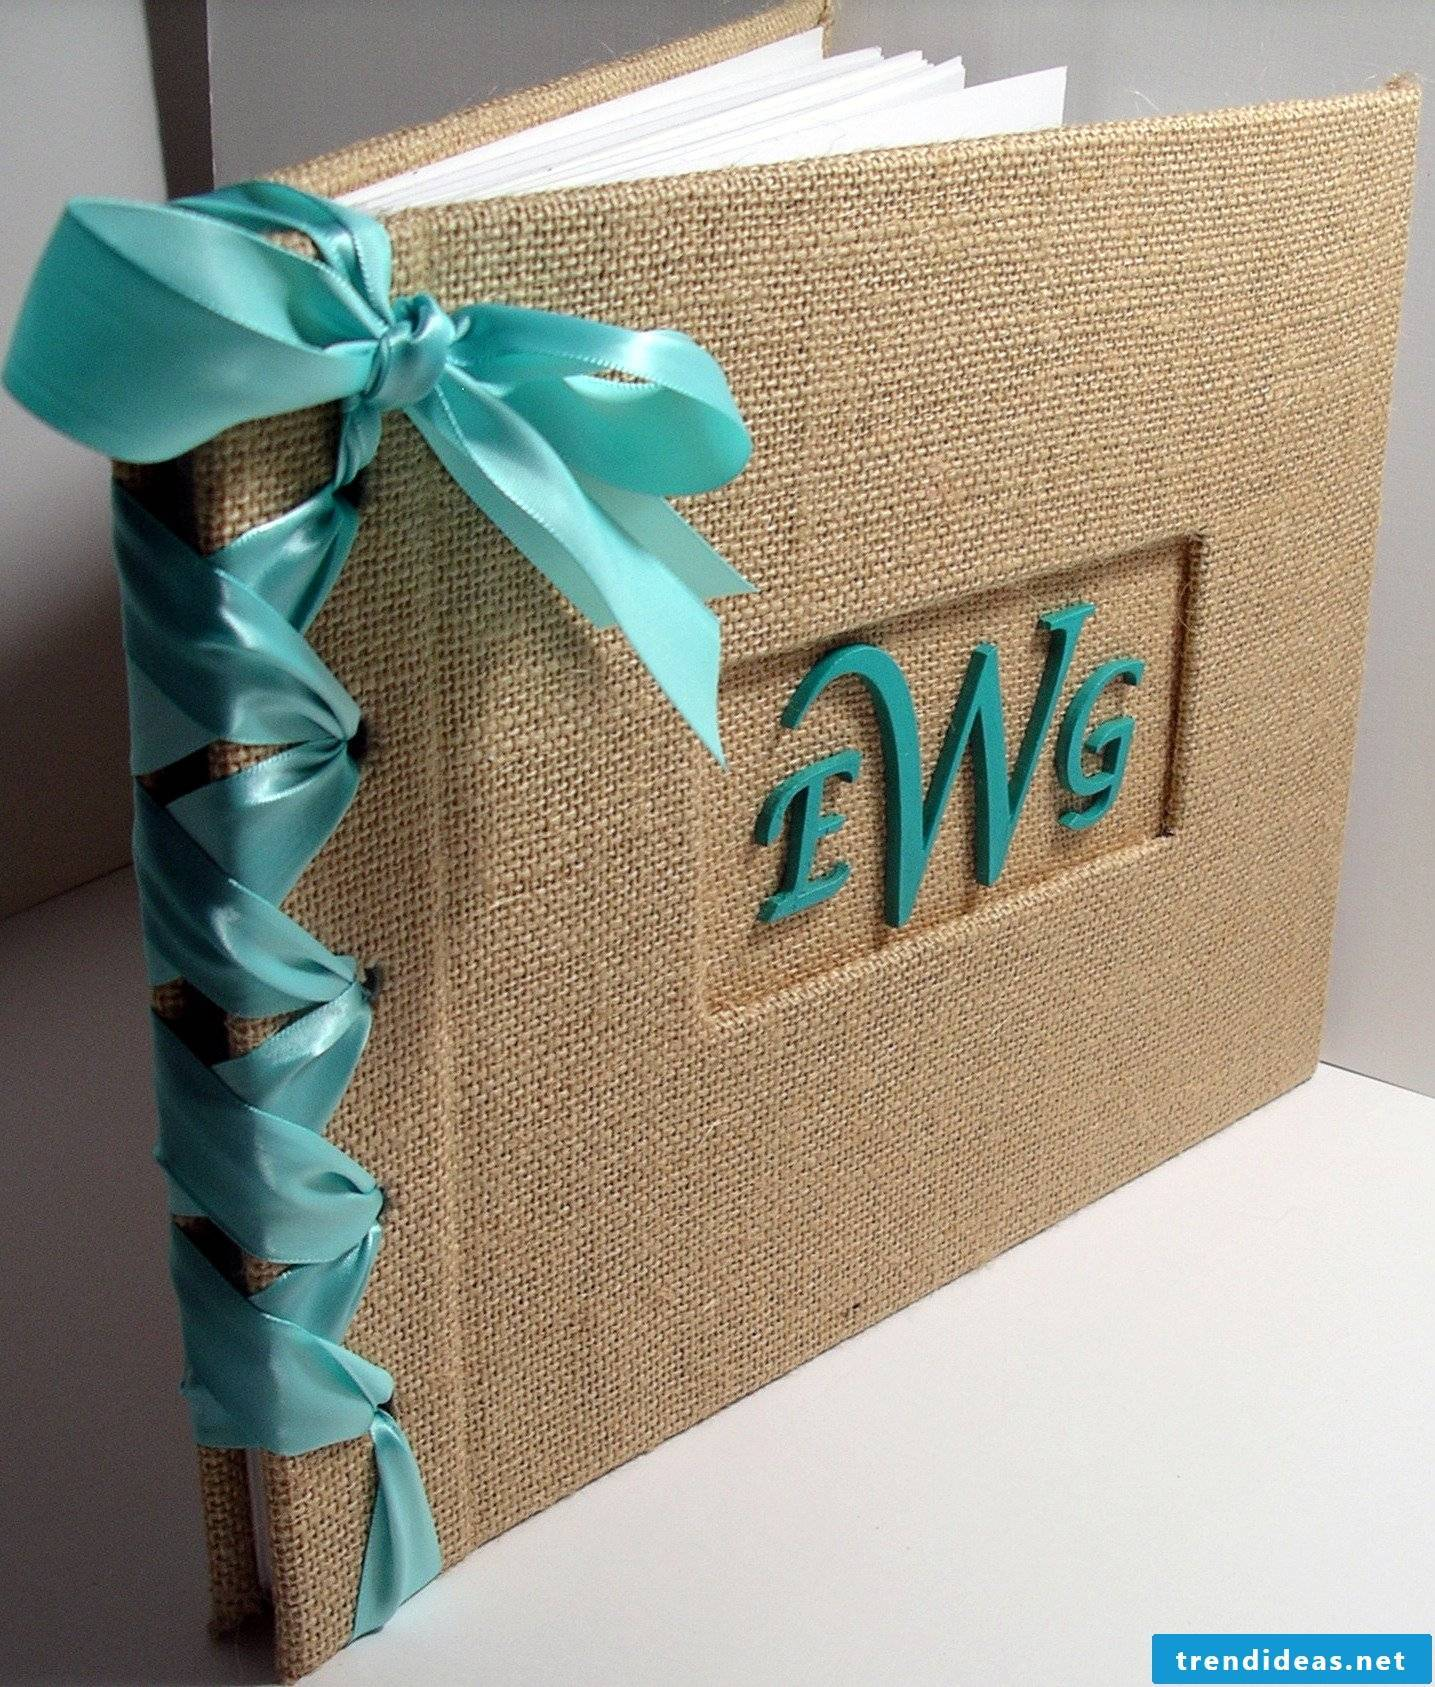 Linen and natural materials for a beautiful photo album